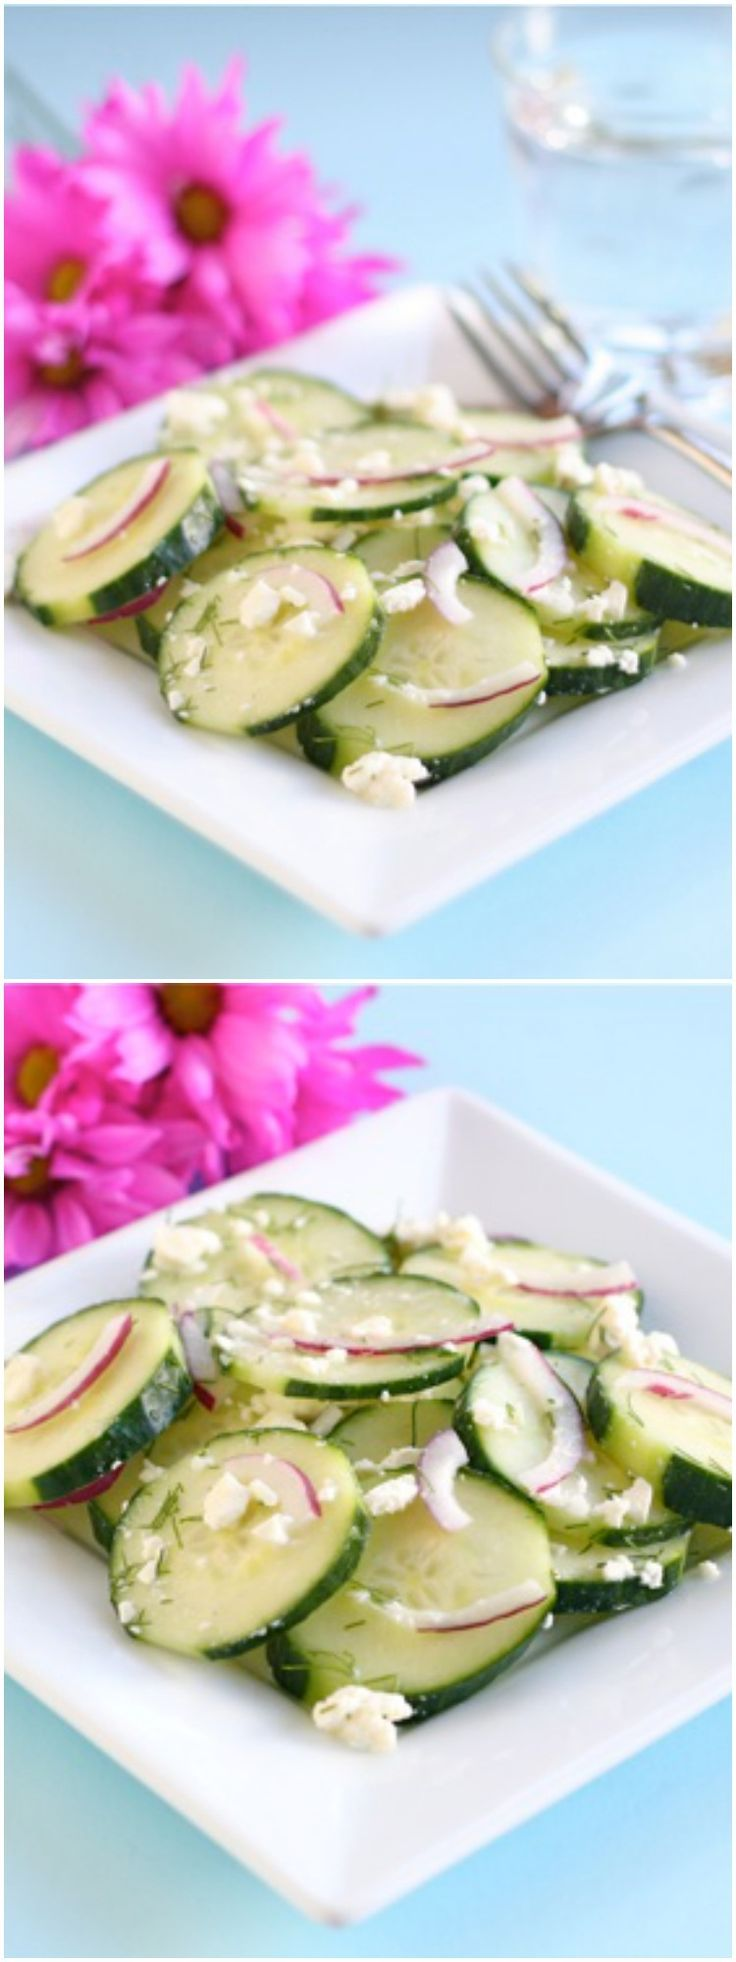 Easy Cucumber Feta Salad Recipe on twopeasandtheirpod.com. Make this ...